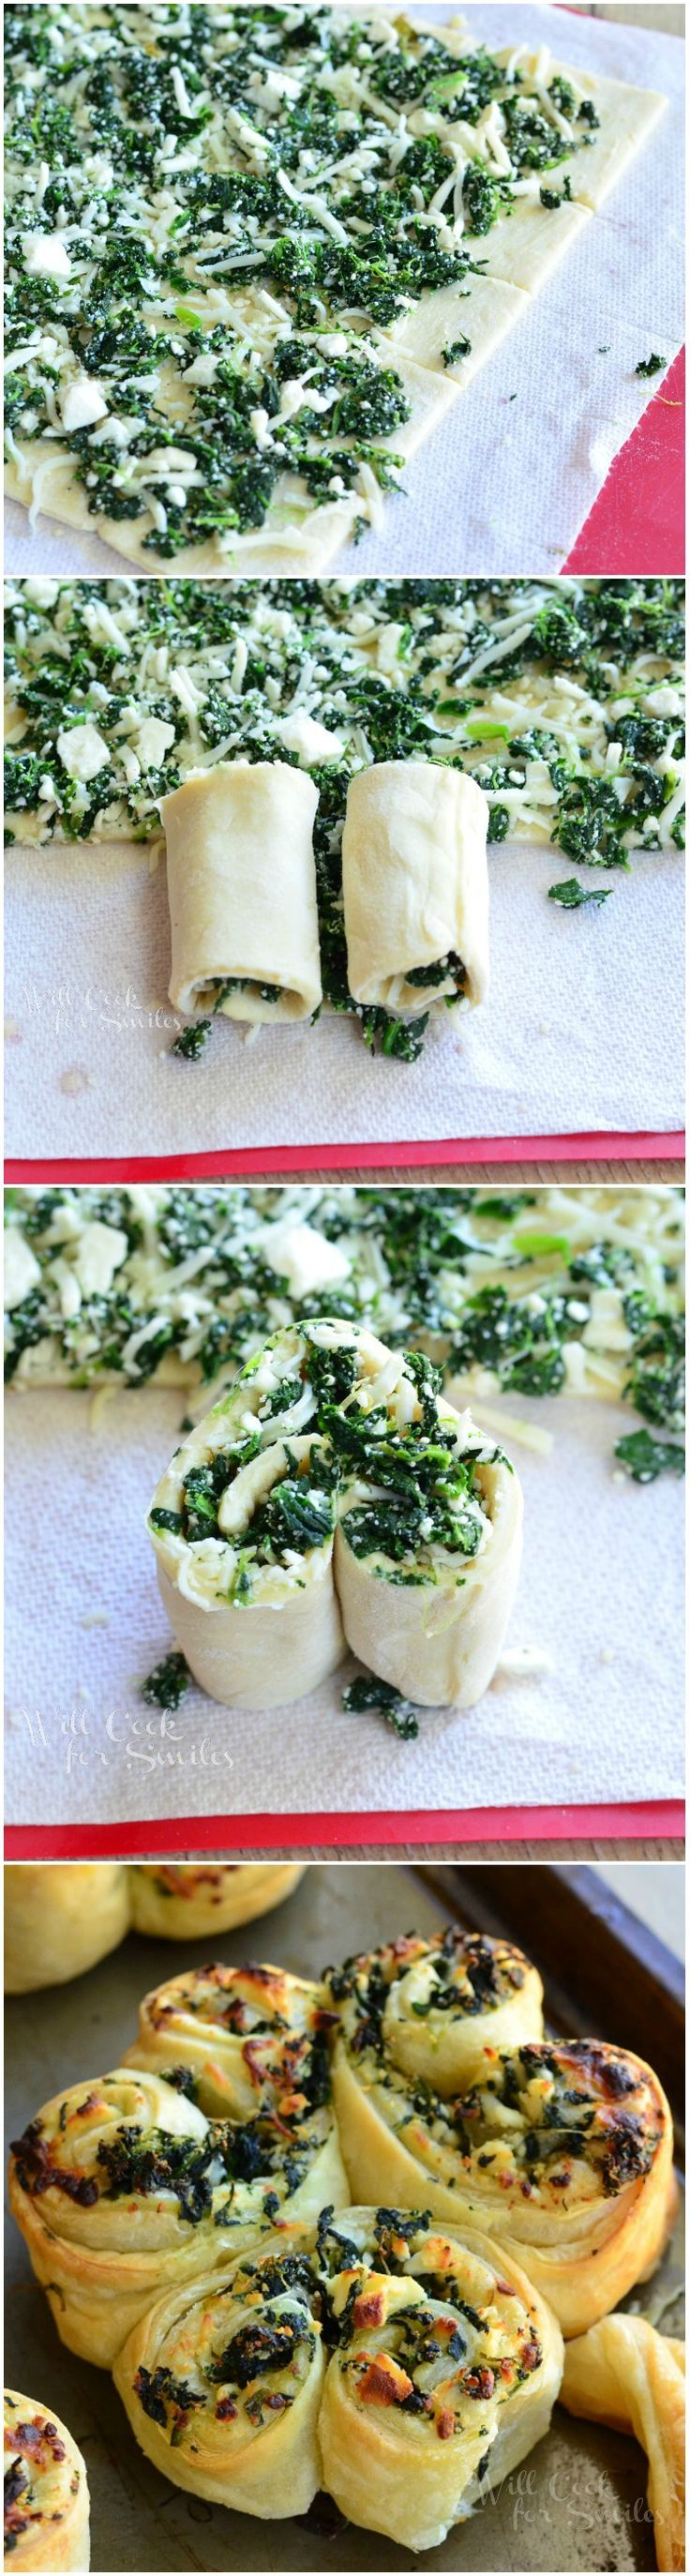 Spinach and Feta Pastry Shamrock | from willcookforsmiles.com